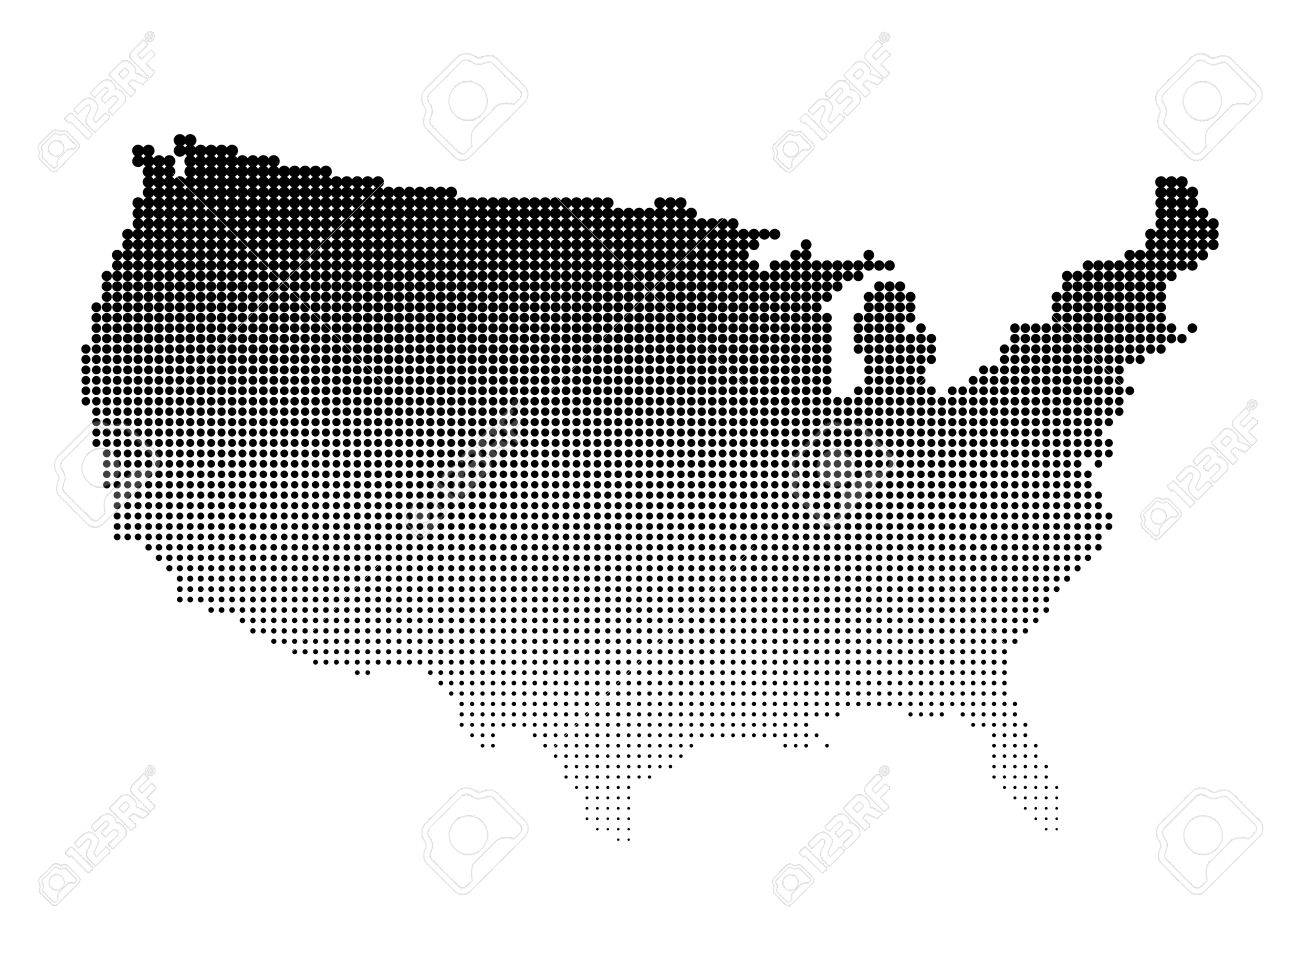 Diagram Of United States Map Vector Download More Maps Diagram Vector Map Of Usa Download